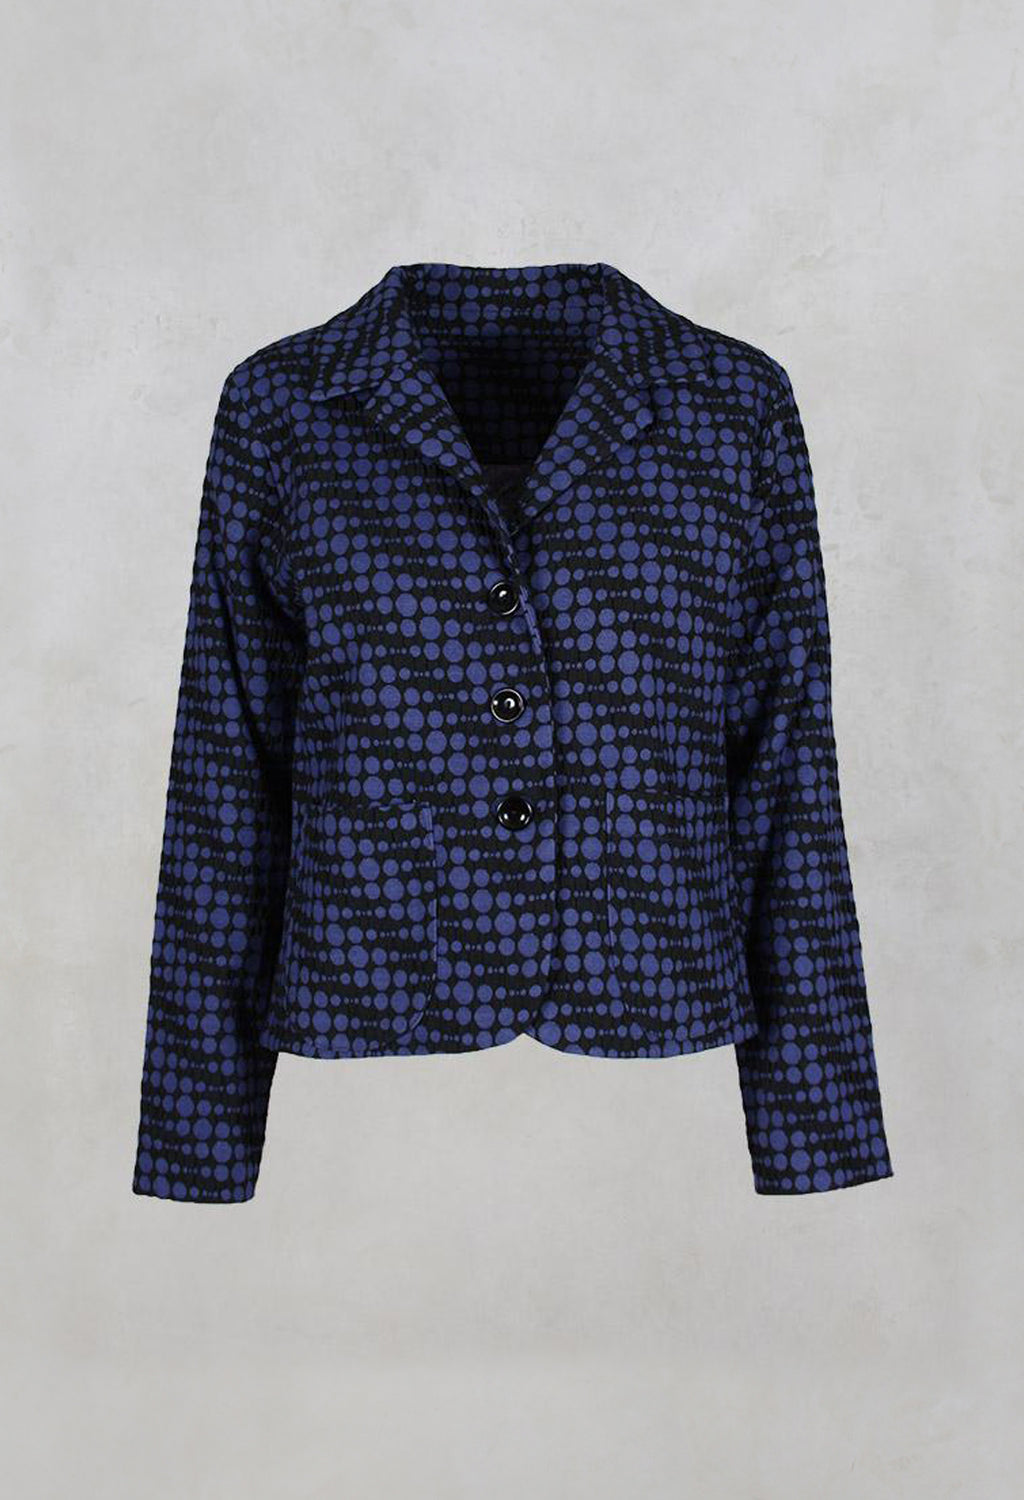 Spotty Jacquard Short Jacket with Button Front in Blueberry